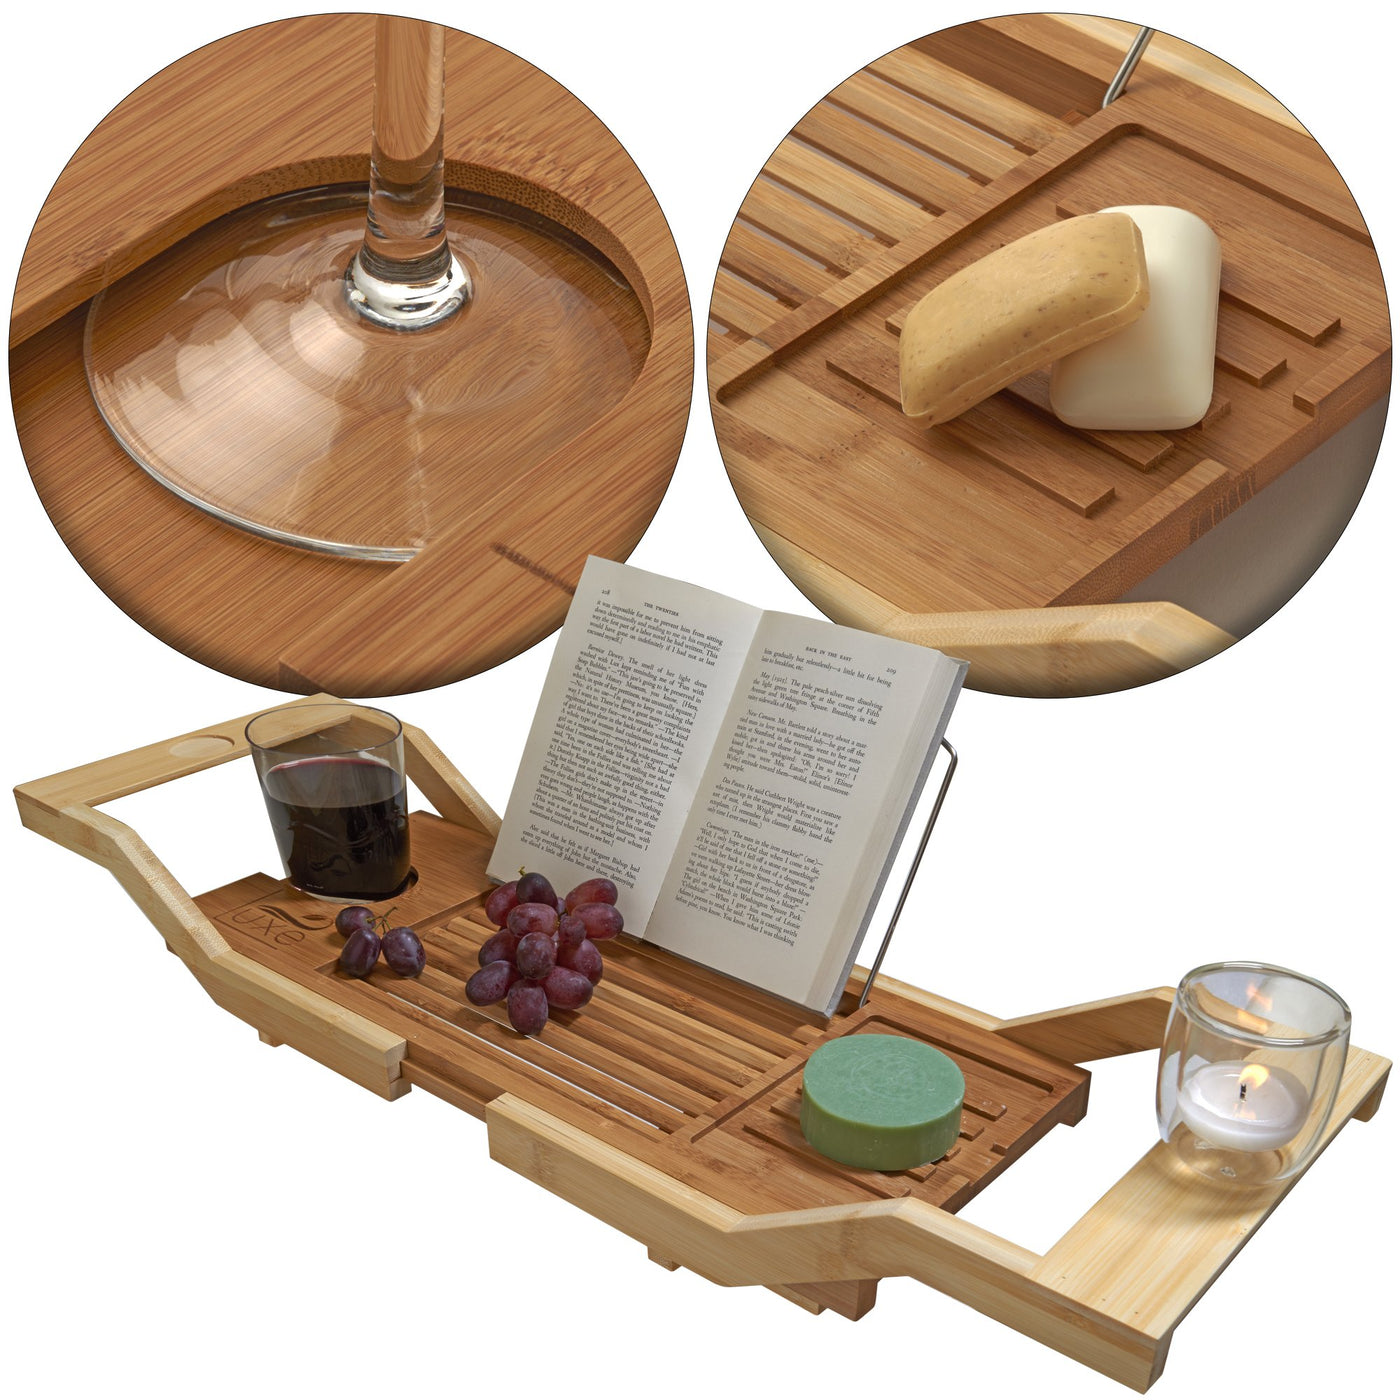 luxe expandable bamboo bath tray caddy with reading rack and glass holder